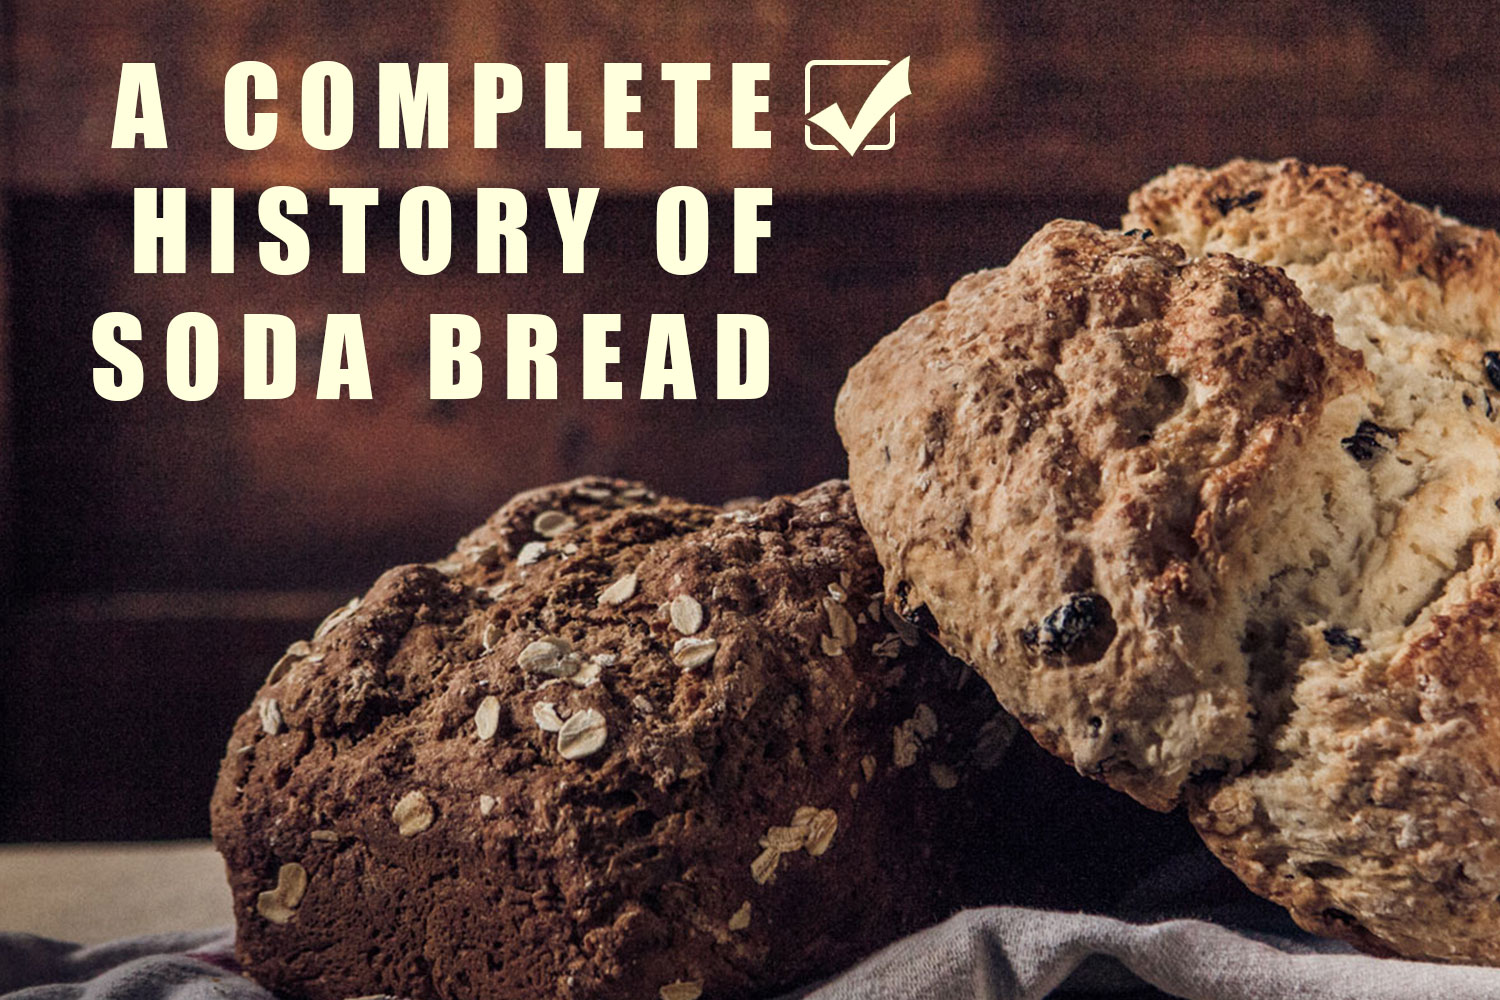 Complete history and chronology of classic Irish soda bread